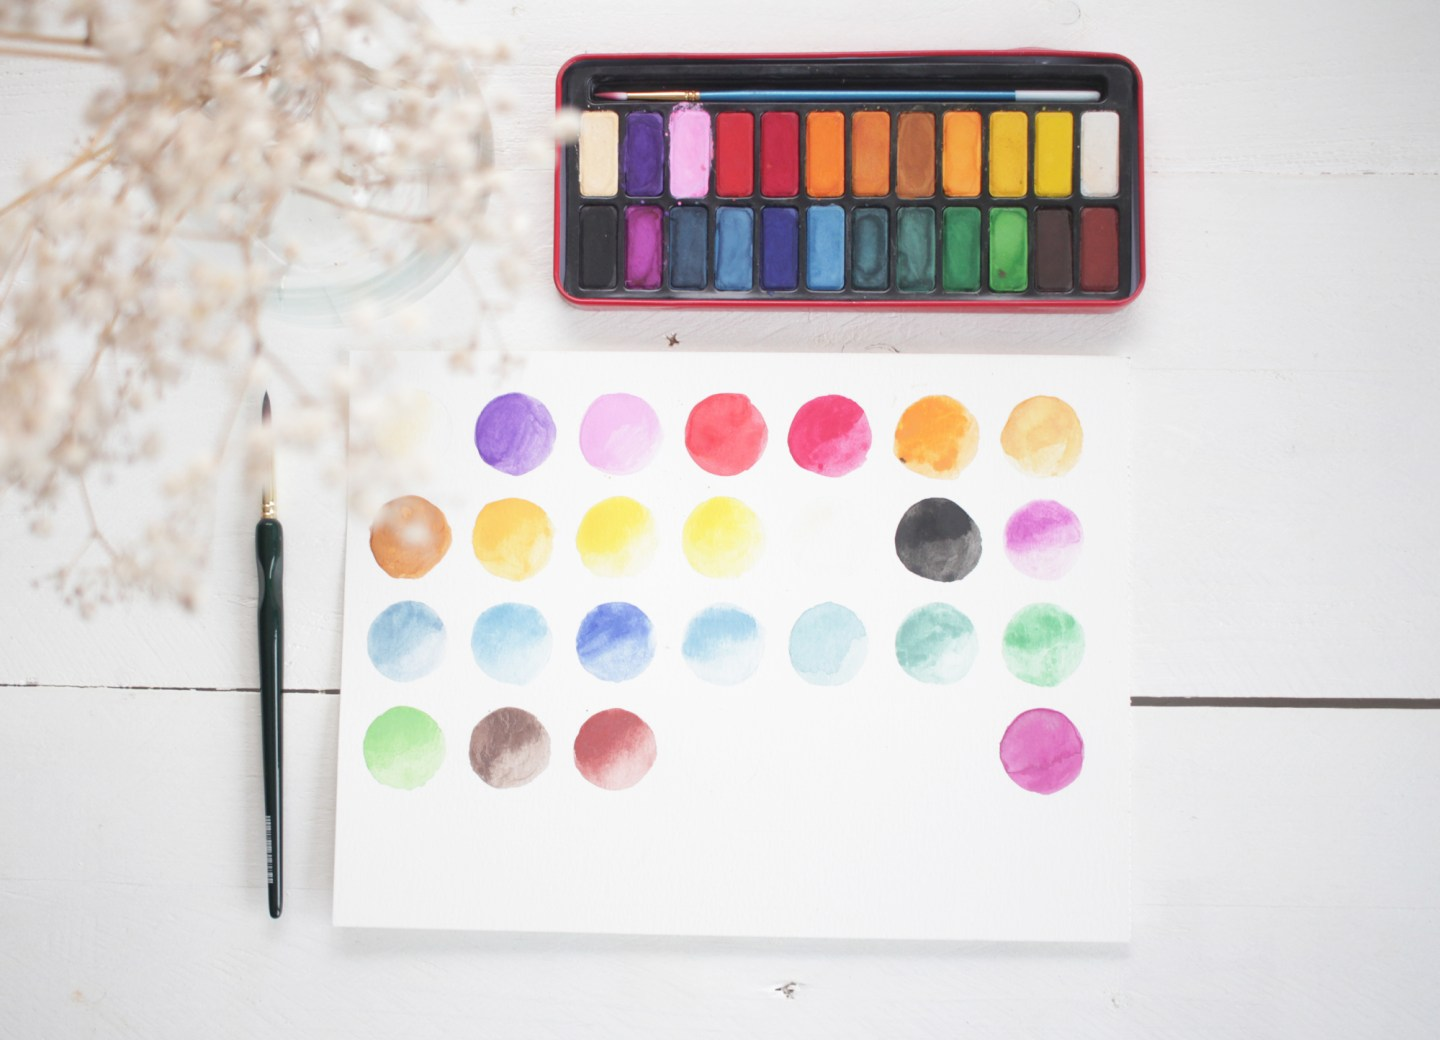 Review Aquarelverf van Ali Express